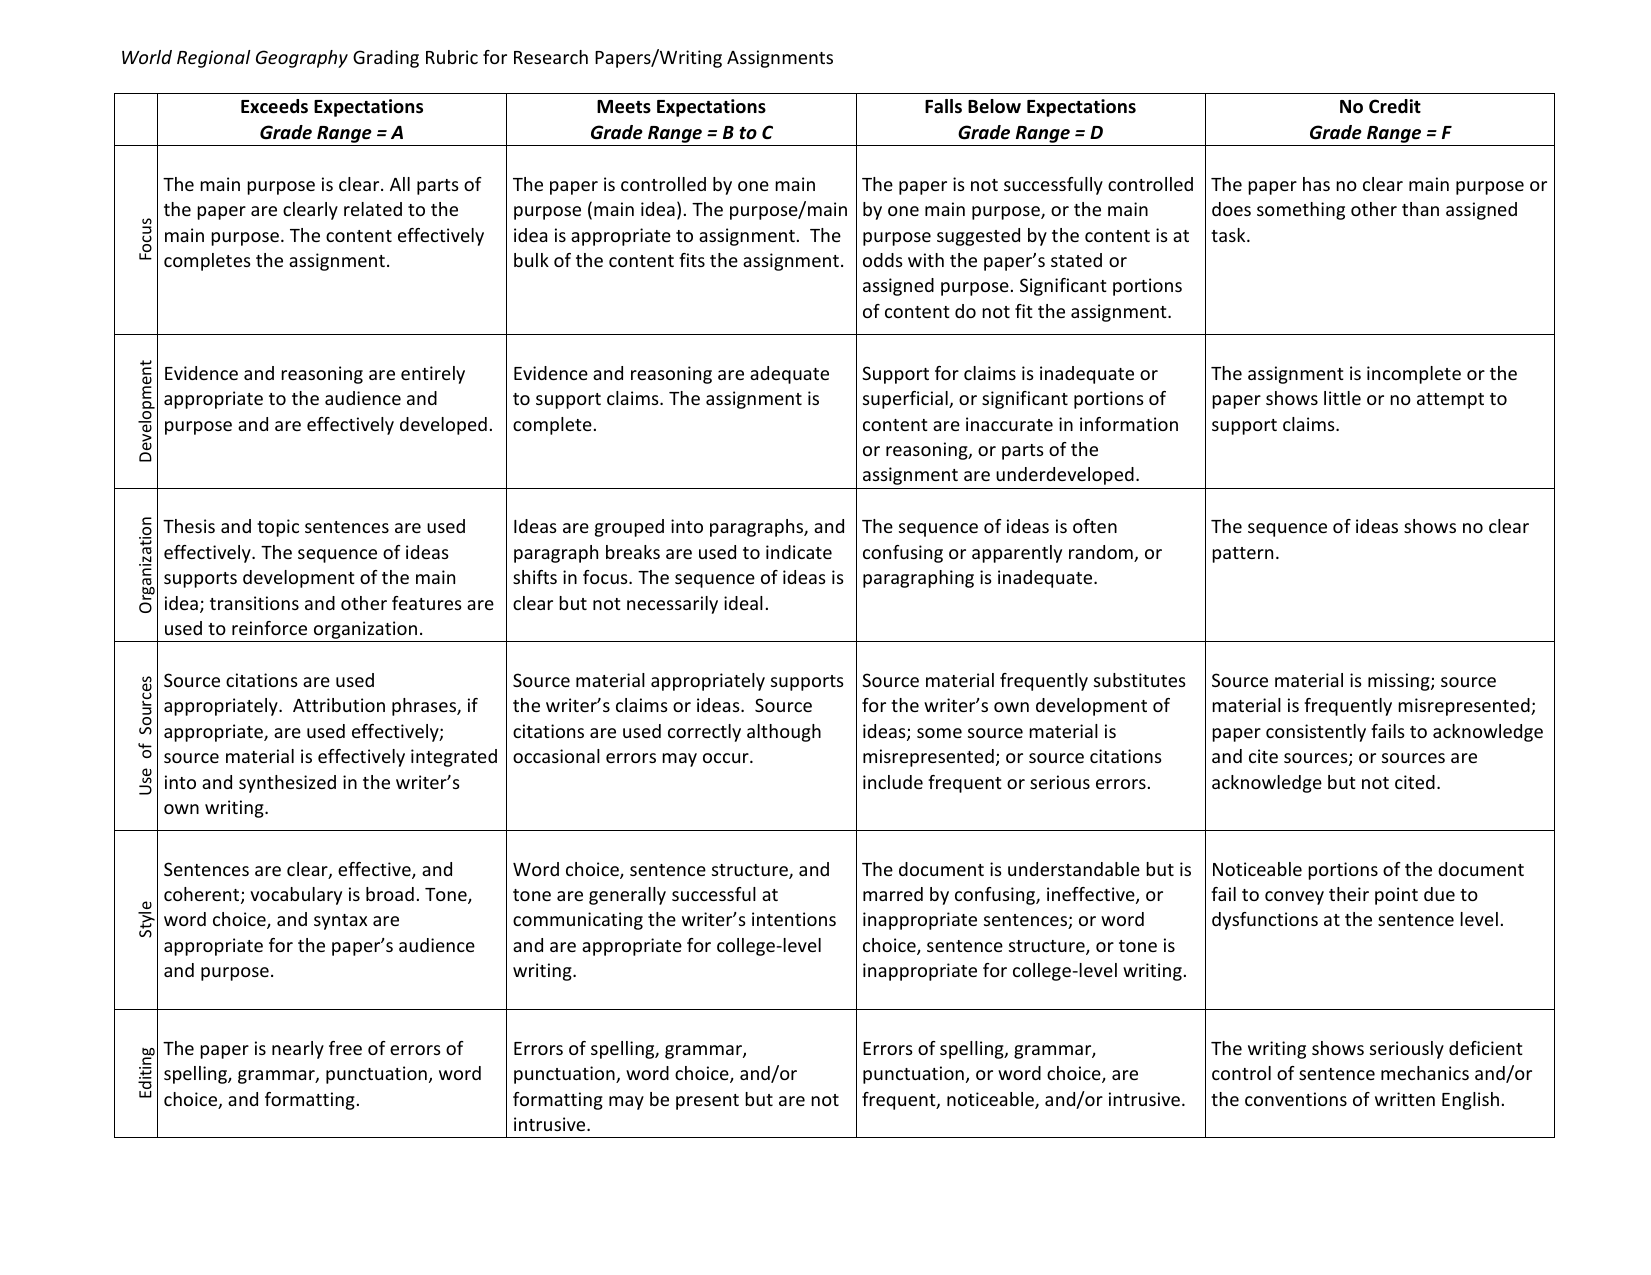 assignment rubric example